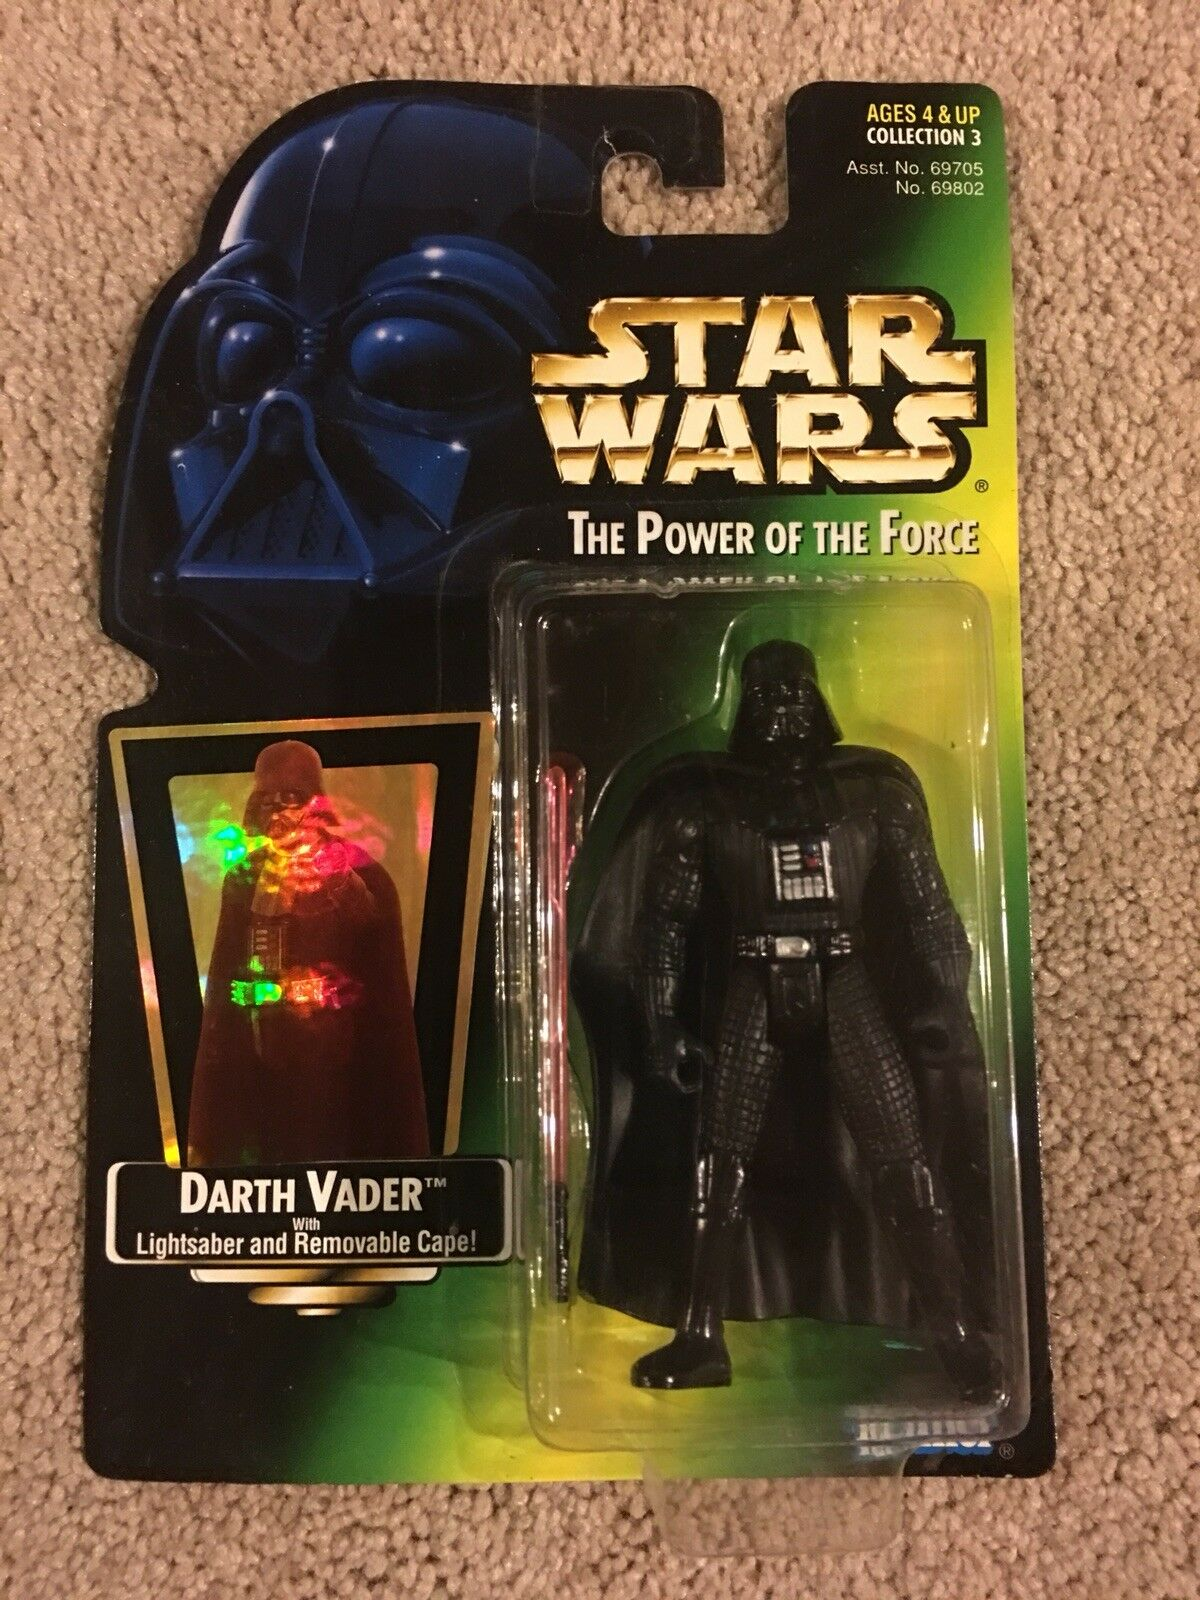 BRAND NEW 1997 DARTH VADER Star Wars Power of the Force action figure free ship